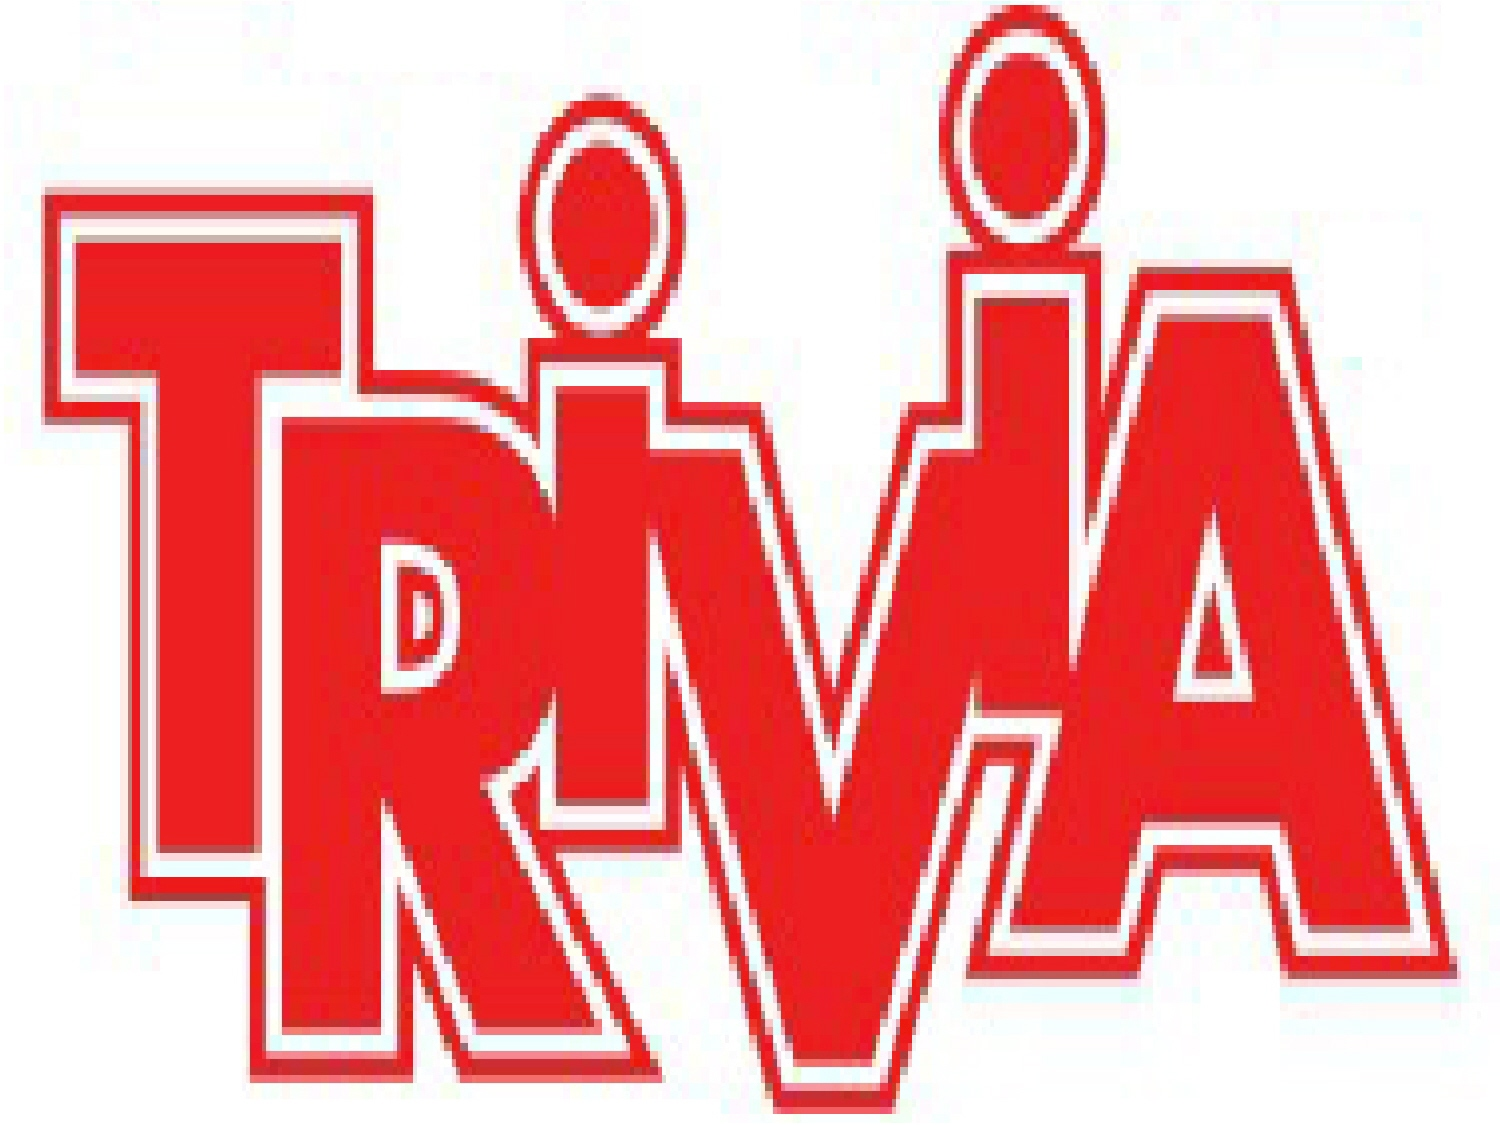 Free trivia clipart clipart royalty free stock Free Trivia Cliparts, Download Free Clip Art, Free Clip Art on ... clipart royalty free stock